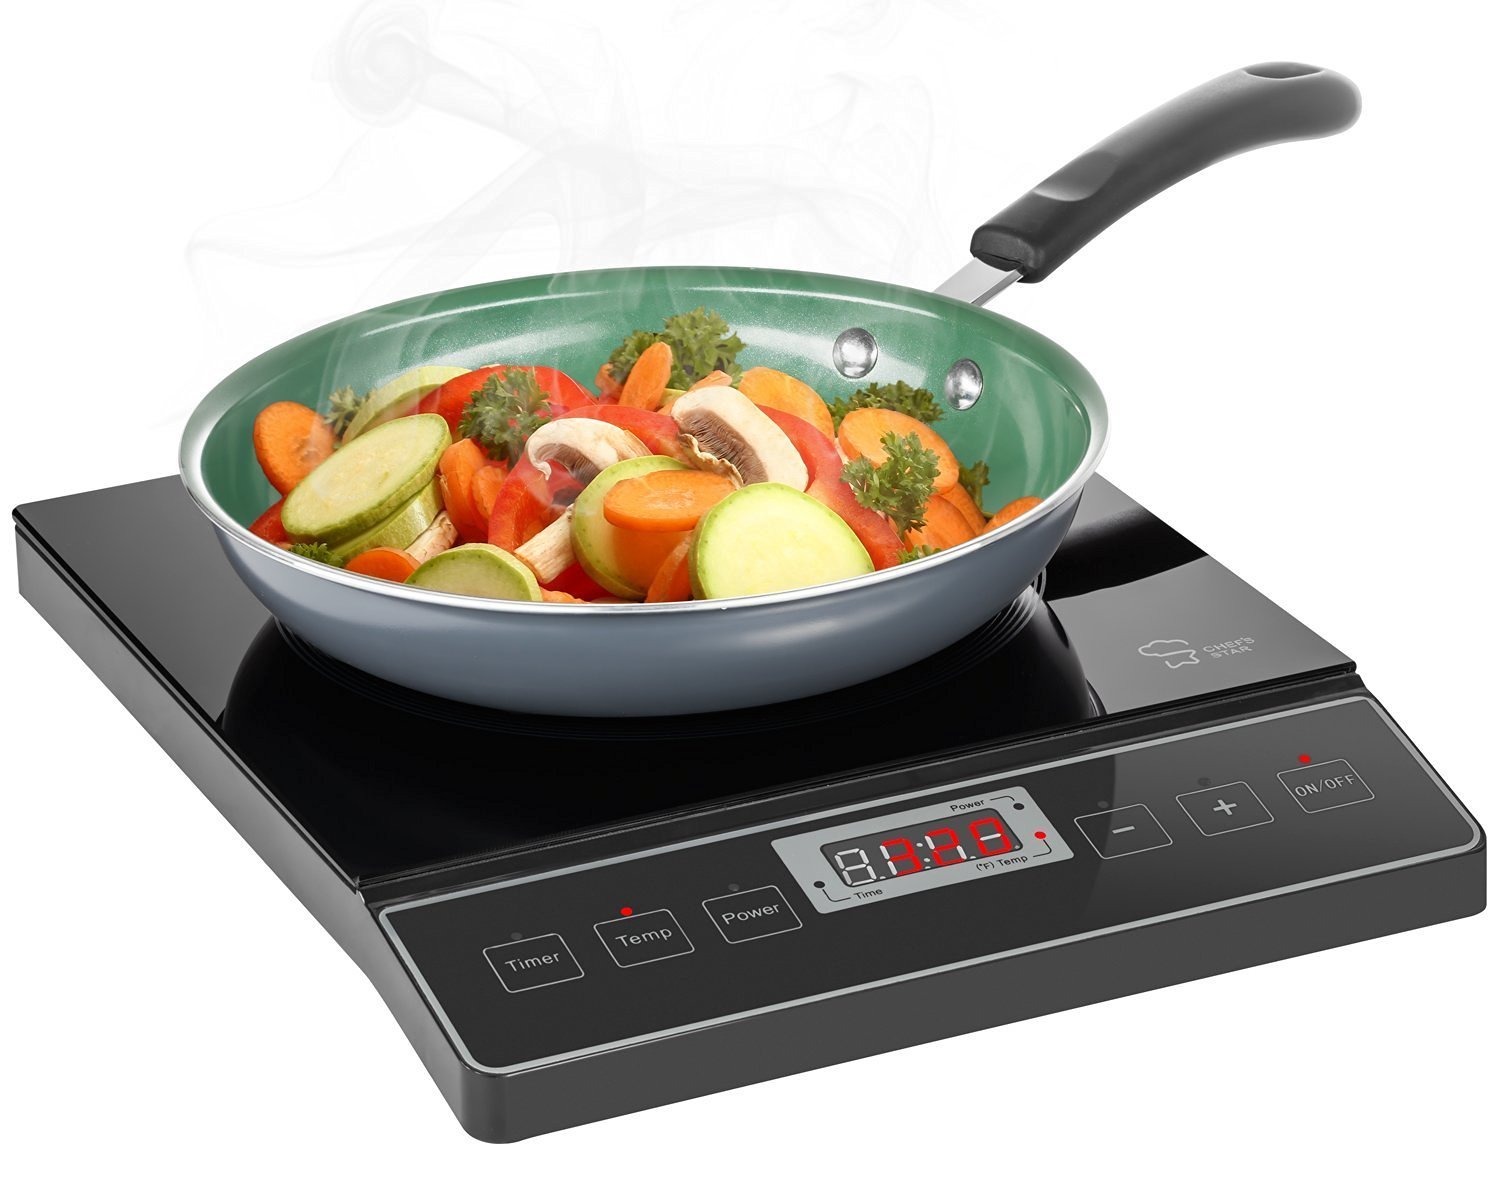 Chef's Star 1800W Portable Induction Cooktop Countertop Burner - 120V / 60Hz - Black